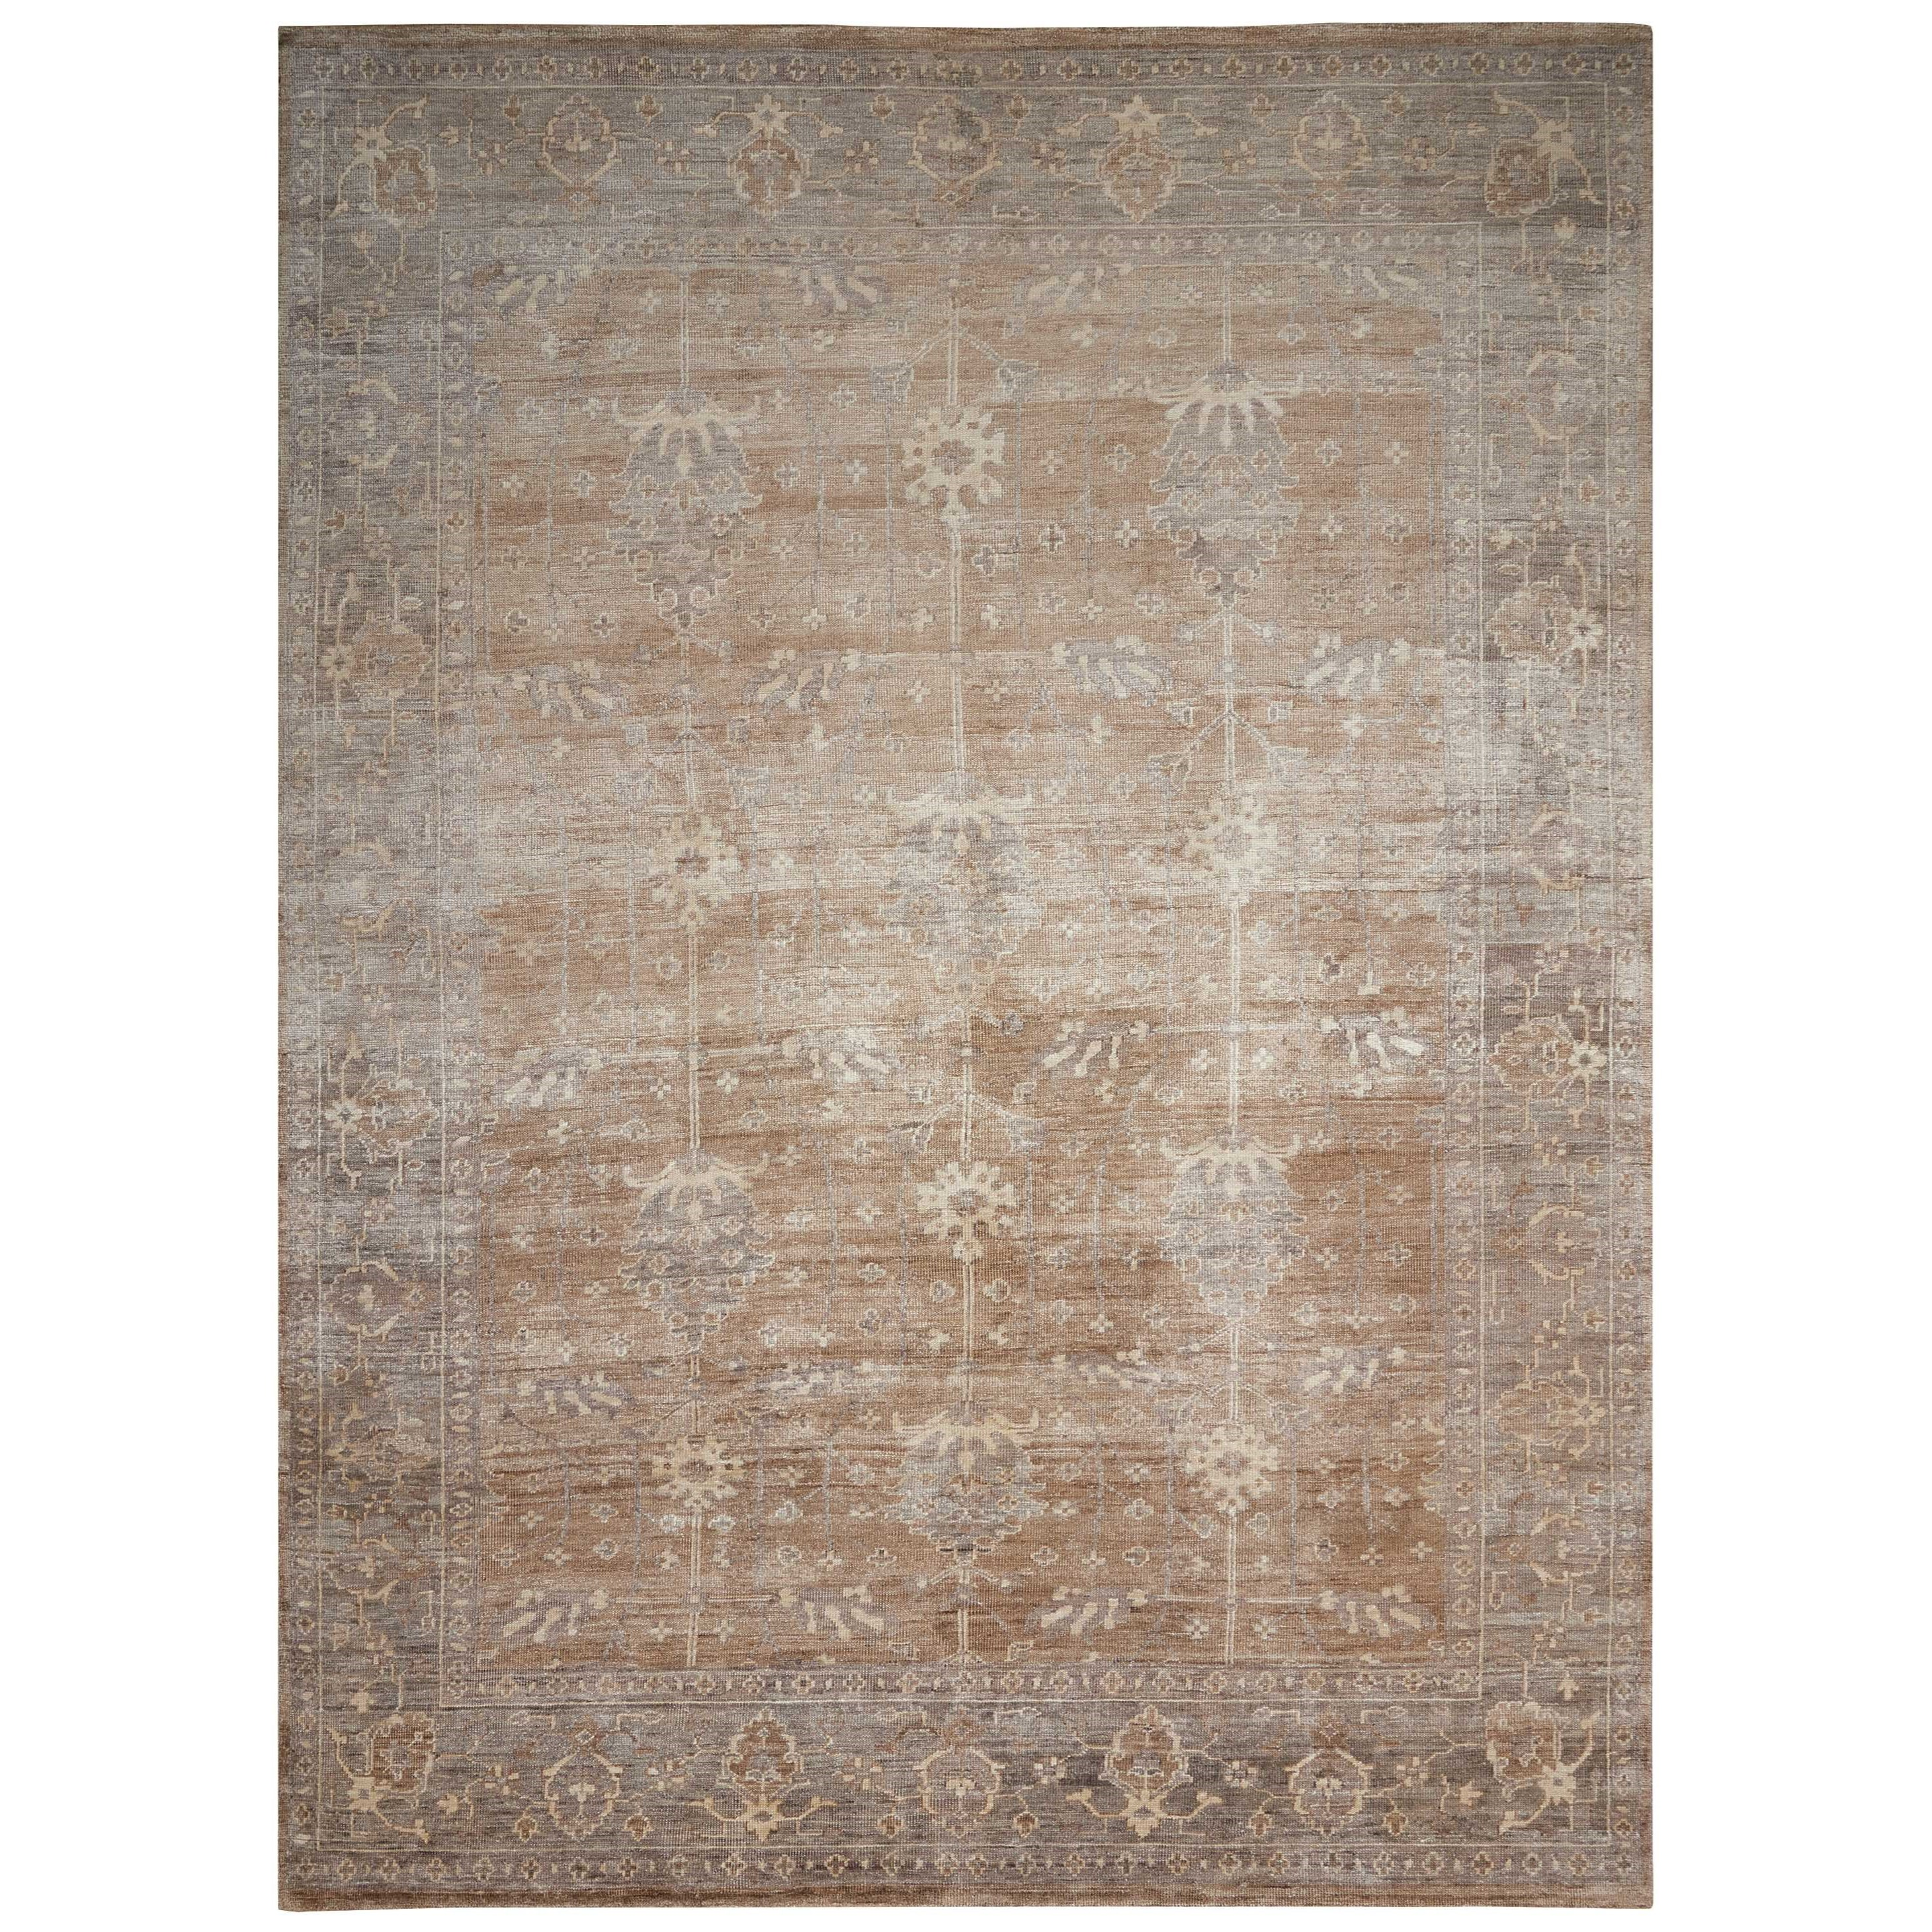 "Aldora1 8'6"" X 11'6"" Pewter Rug by Nourison at Sprintz Furniture"